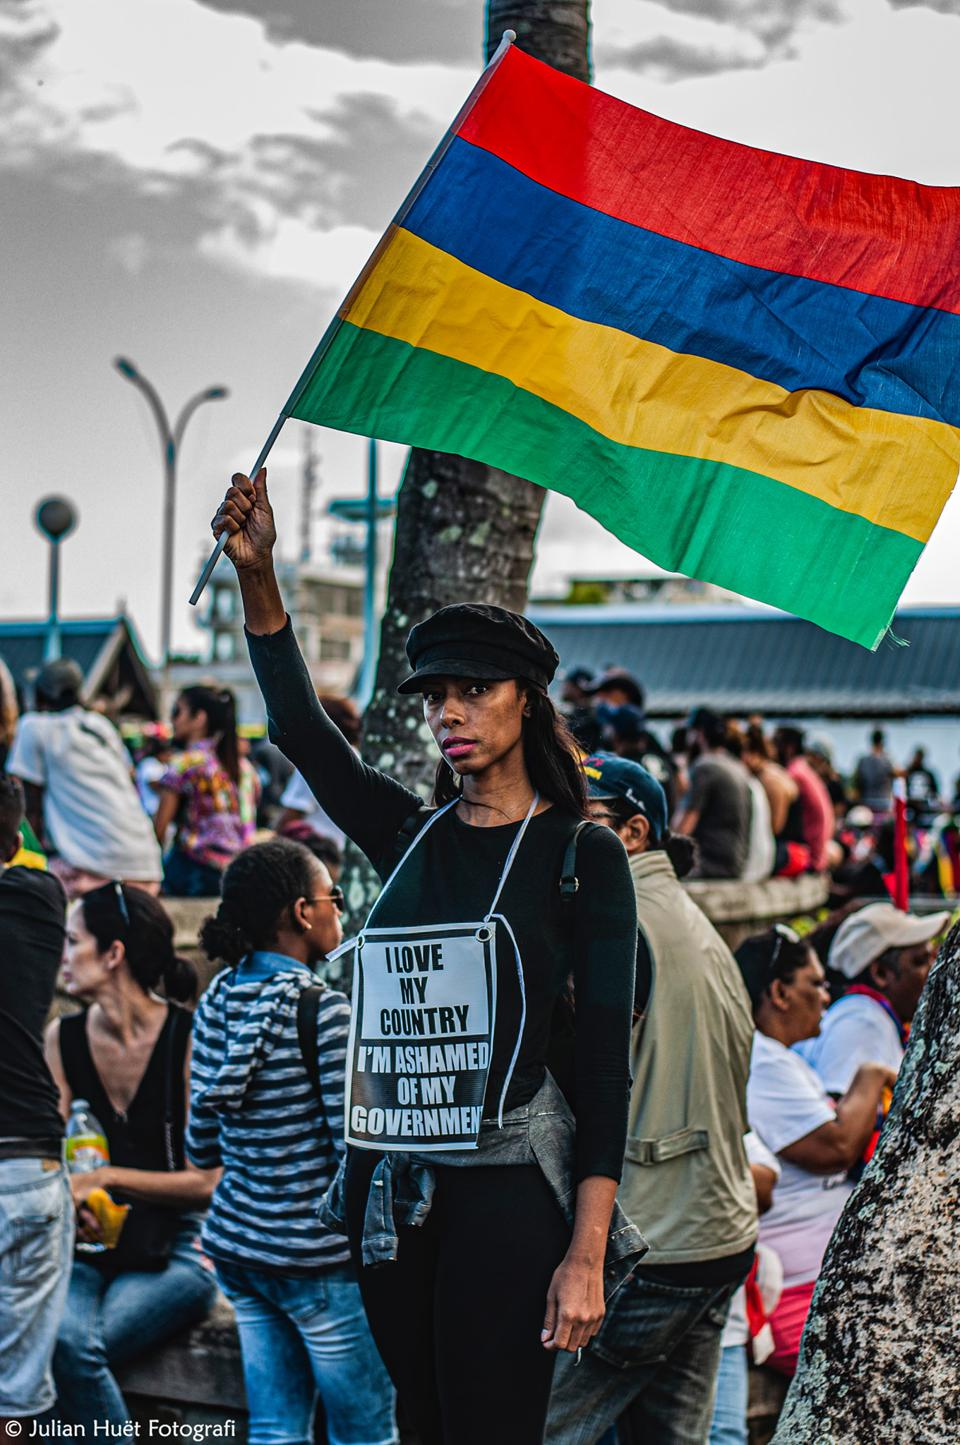 12 Sep 2020: protester in Mahebourg, Mauritius wearing a sign that says 'I love my country. I'm ashamed of my Government.'